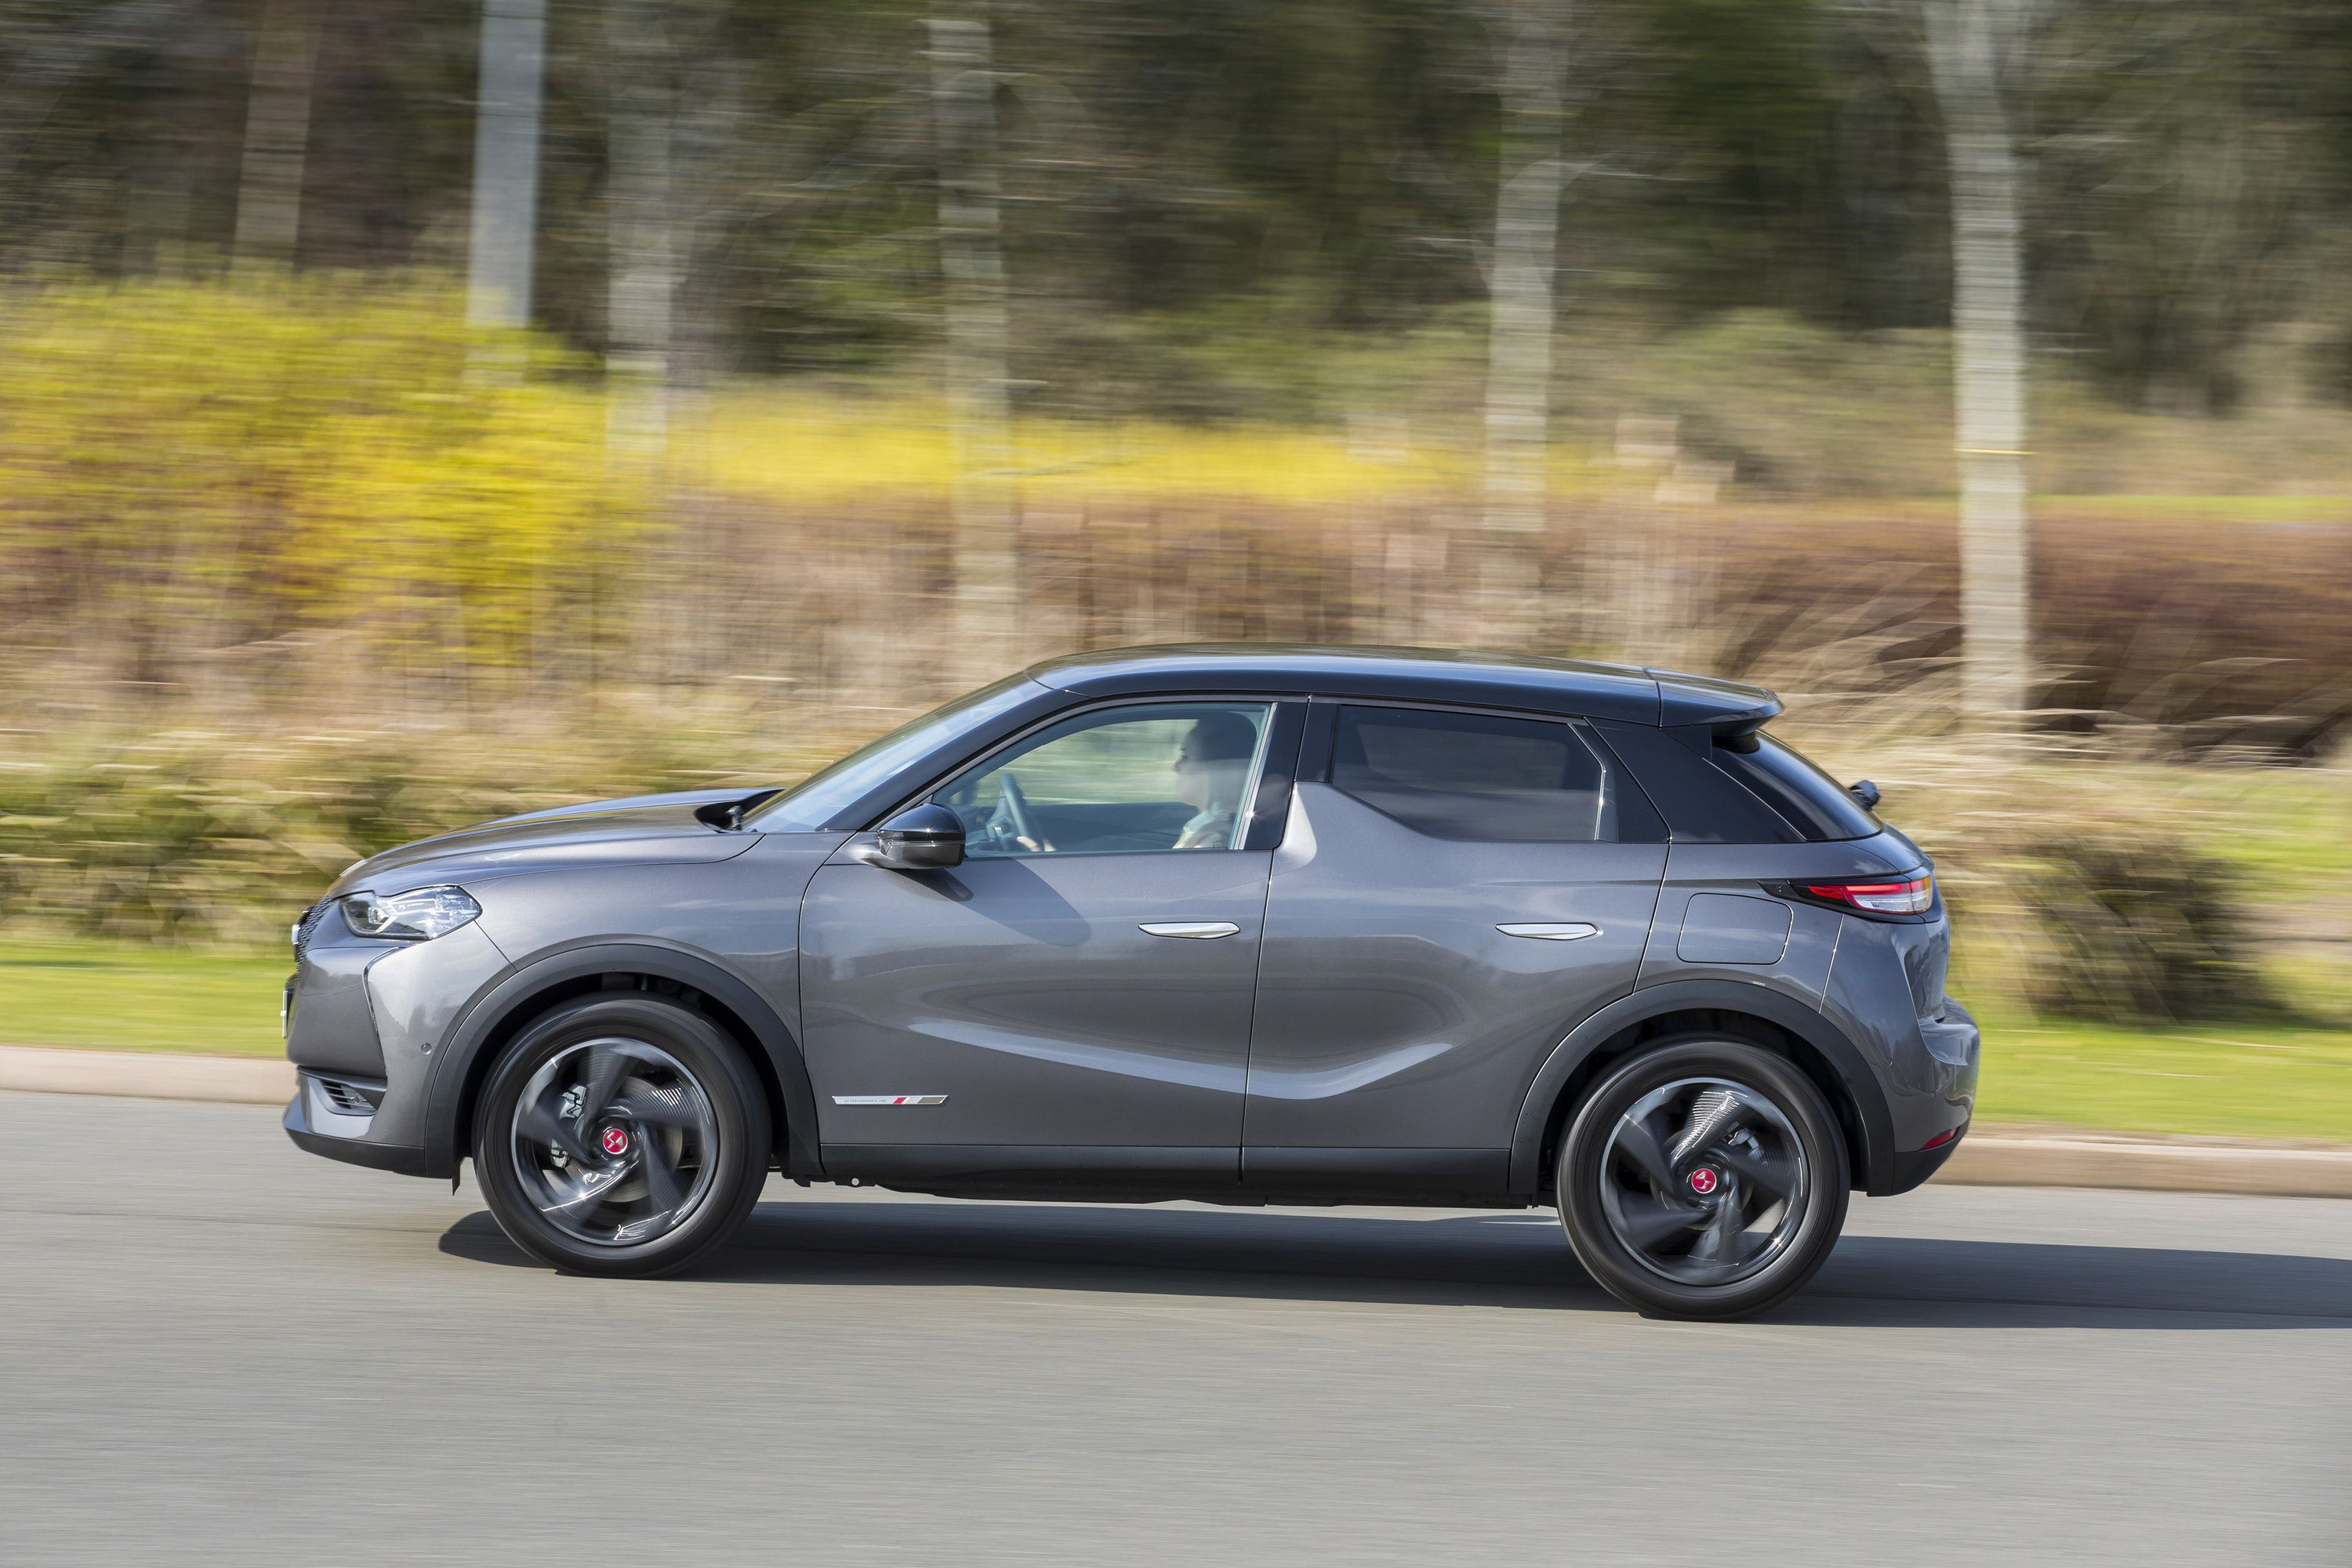 side view of the DS3 Crossback